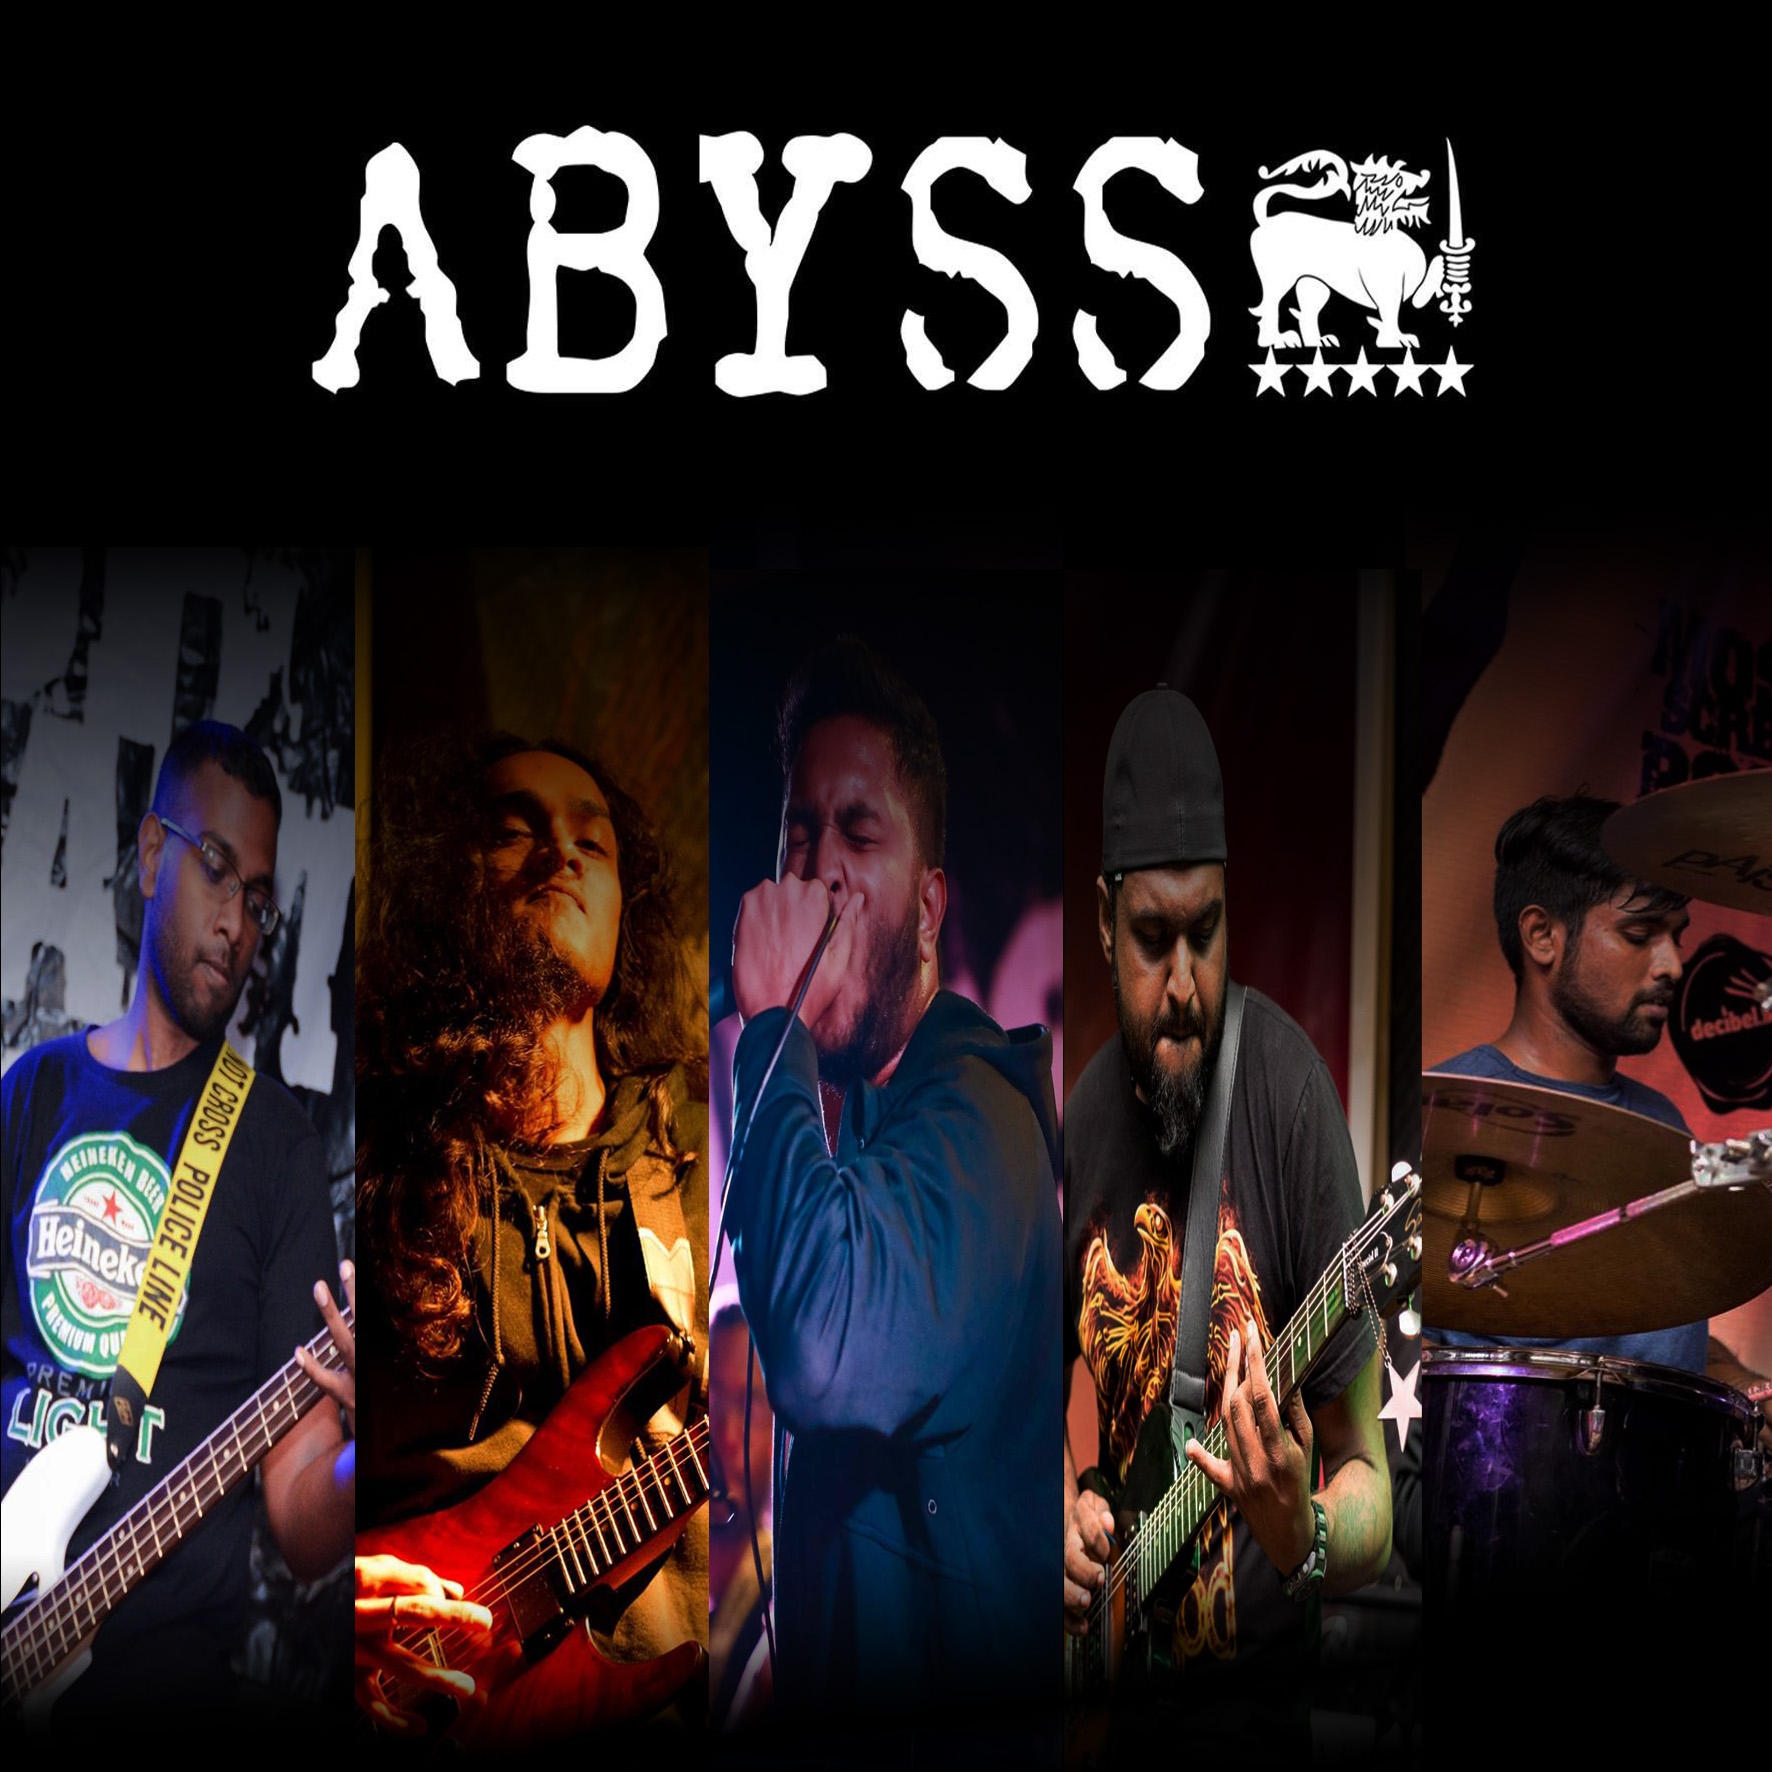 final abyss poster 24.01